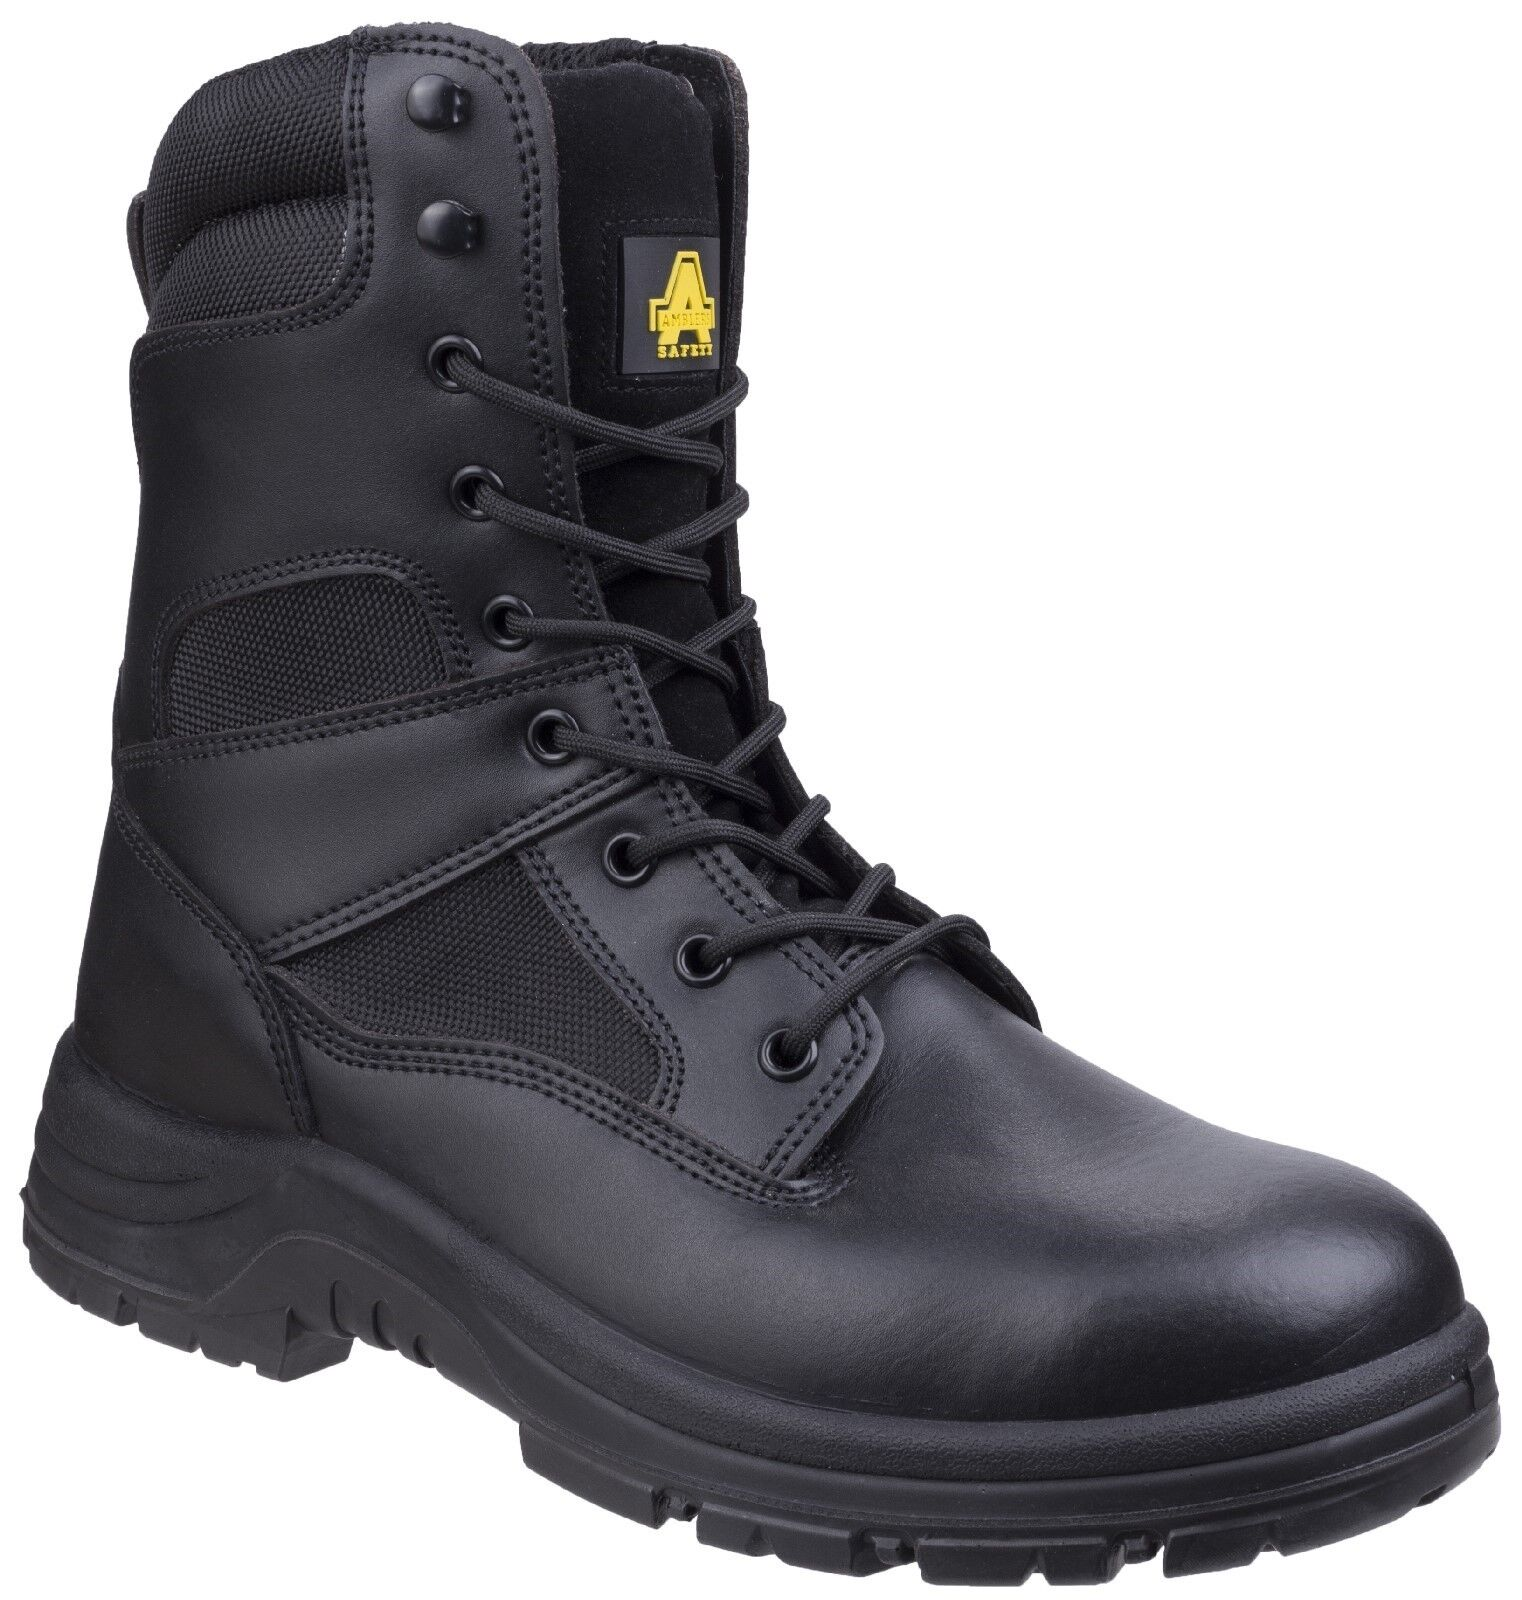 Amblers Black Leather Waterproof Combat Boots Military Police Security High Leg Leg High 9fea65